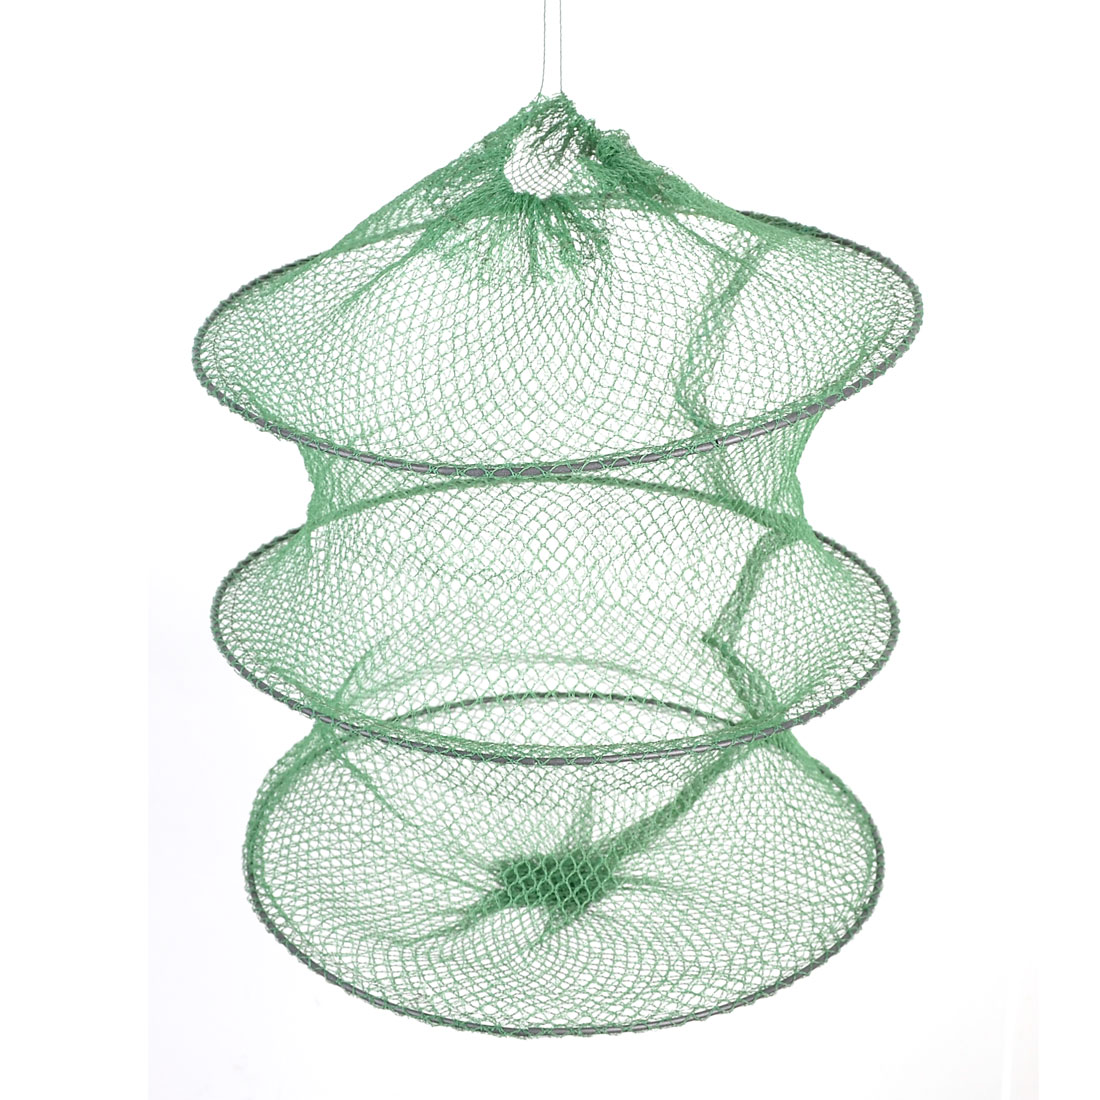 Collapsible 2 Sections Lobster Drawstring Closure Fishing Keep Net